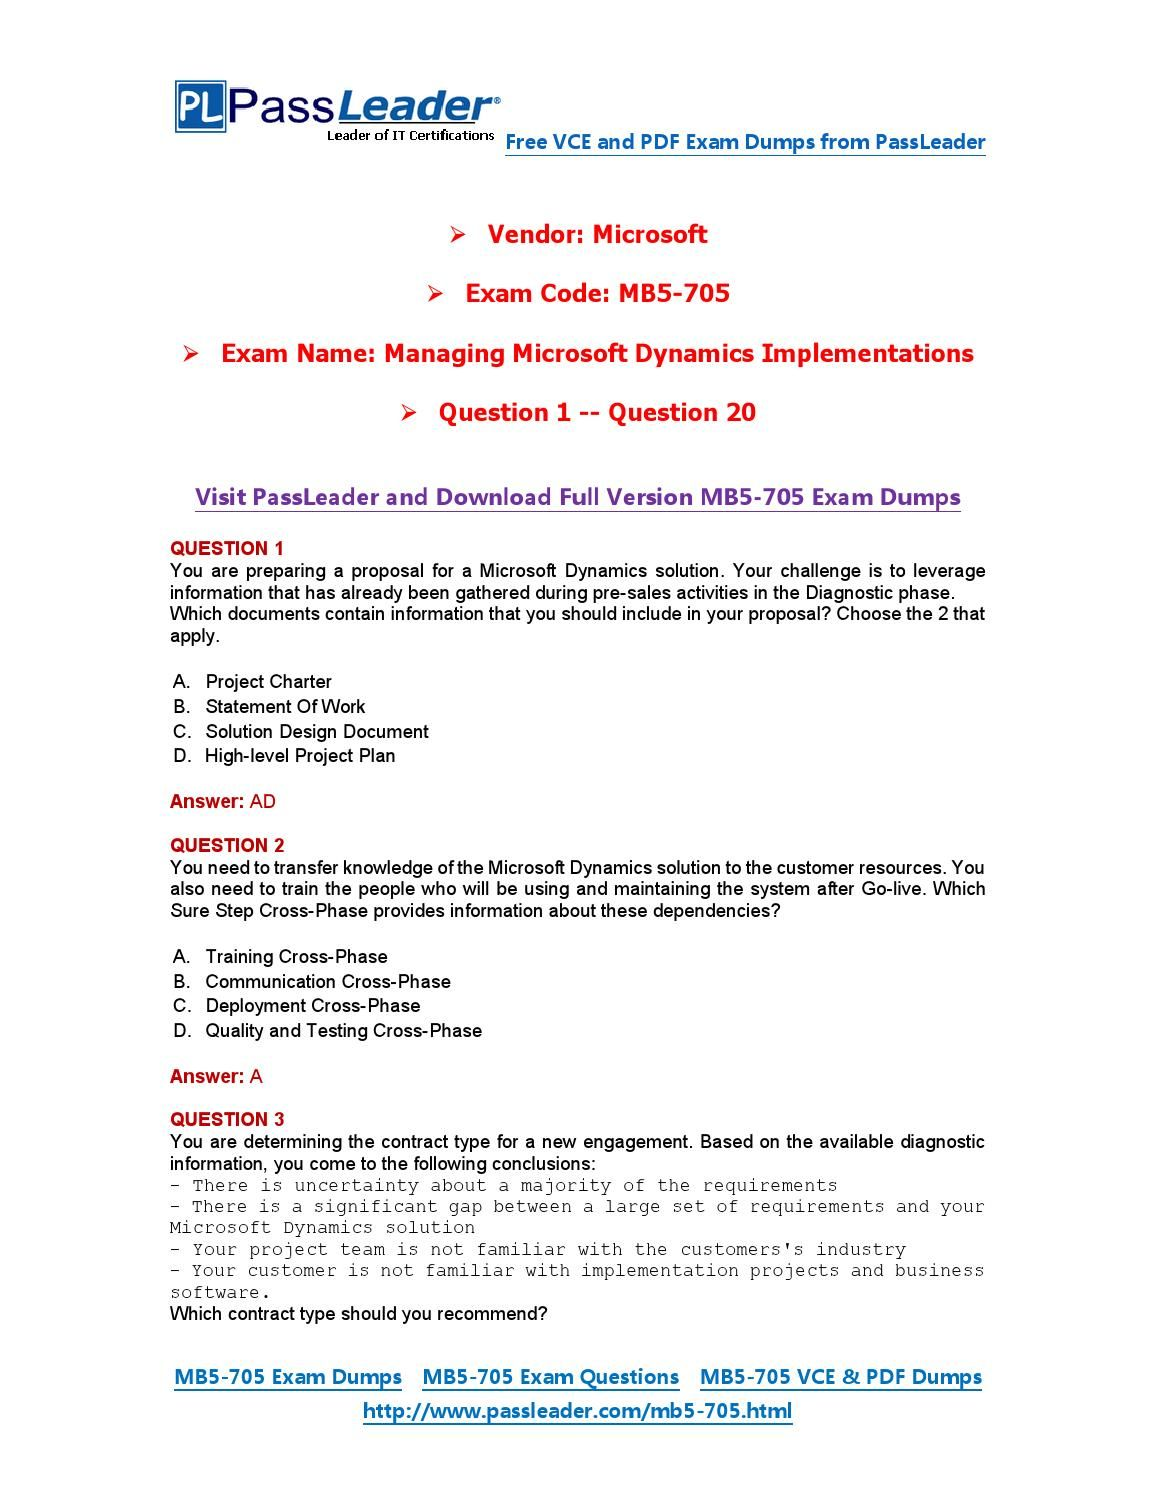 New 70 347 exam dumps with pdf and vce download 102 end 70 new 70 347 exam dumps with pdf and vce download 102 end 70 347 exam dumps with pdf and vce download pinterest xflitez Choice Image